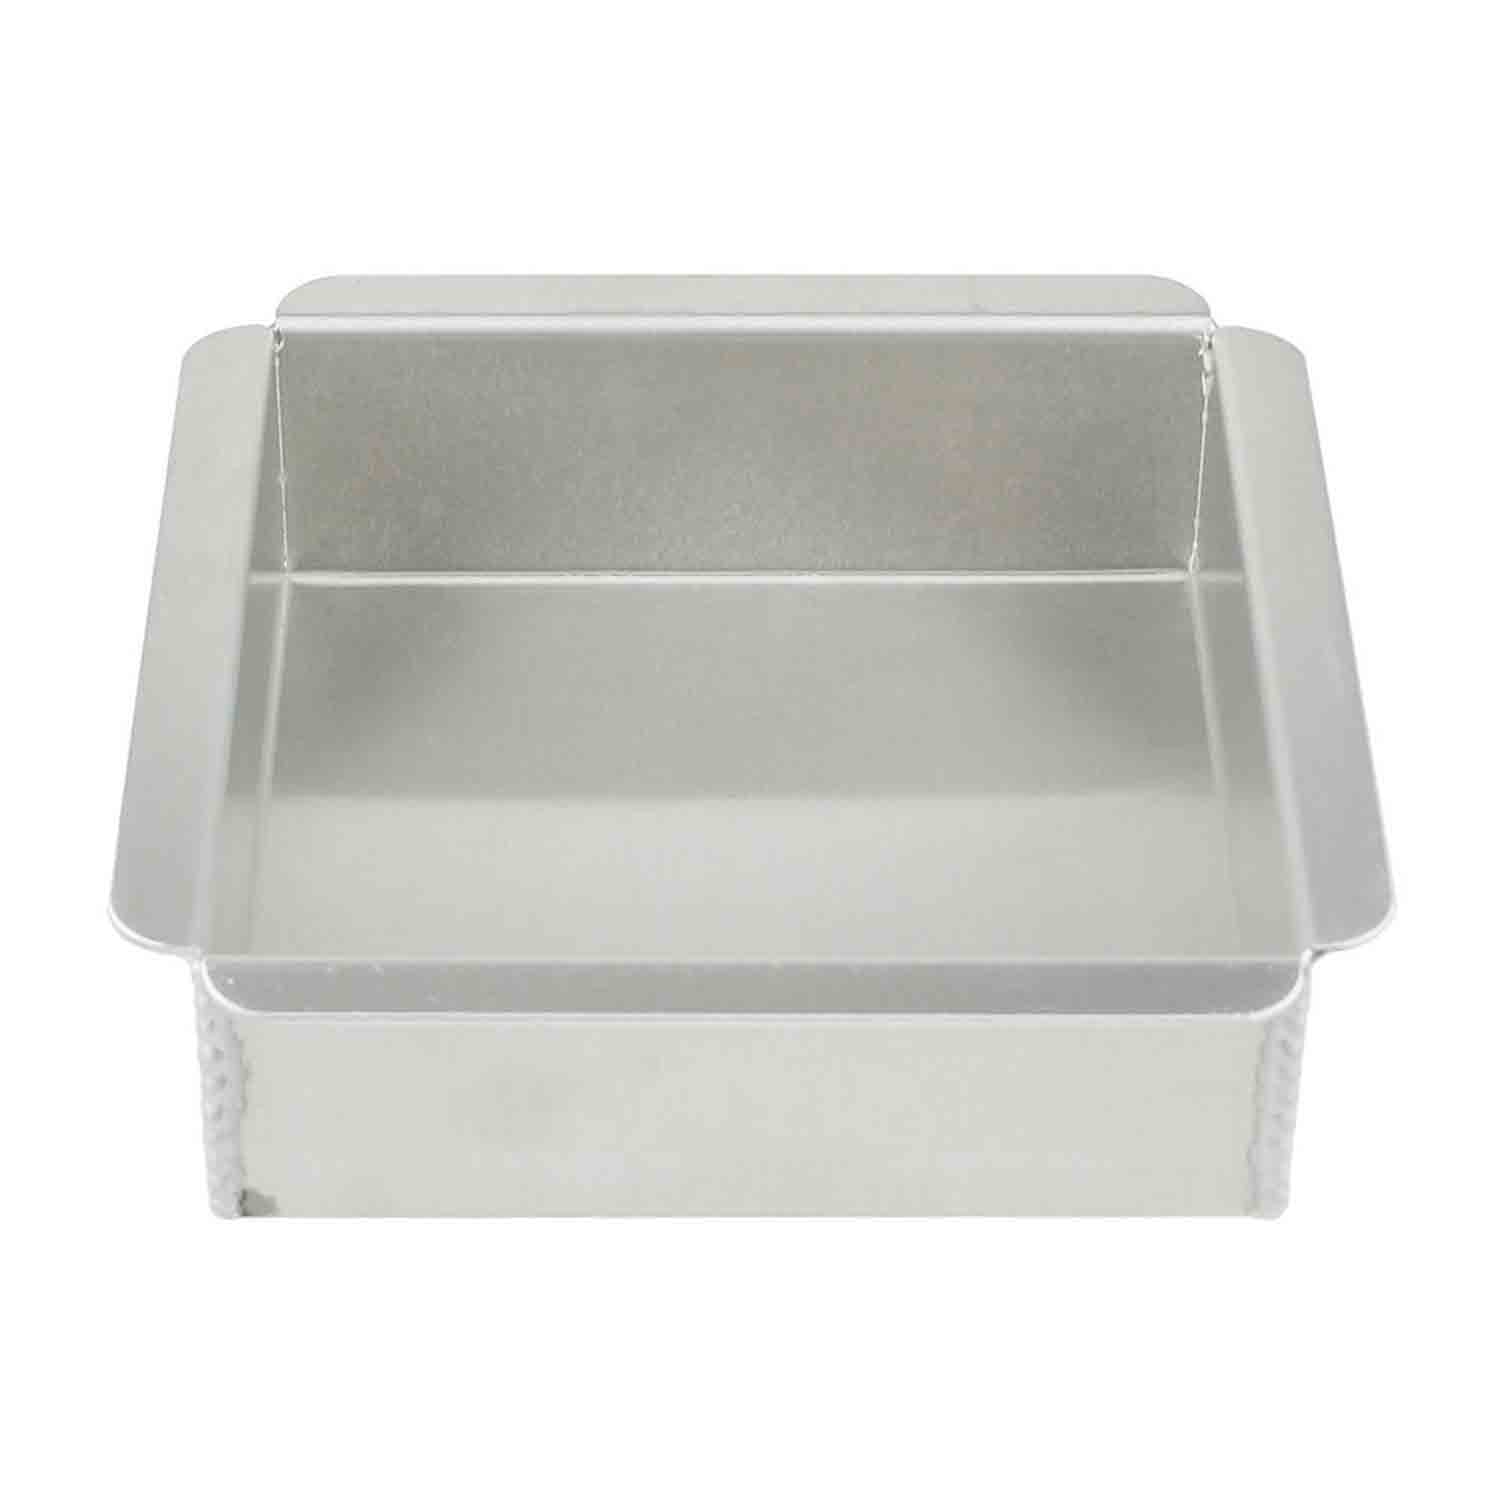 "7 x 2"" Magic Line Square Cake Pan"